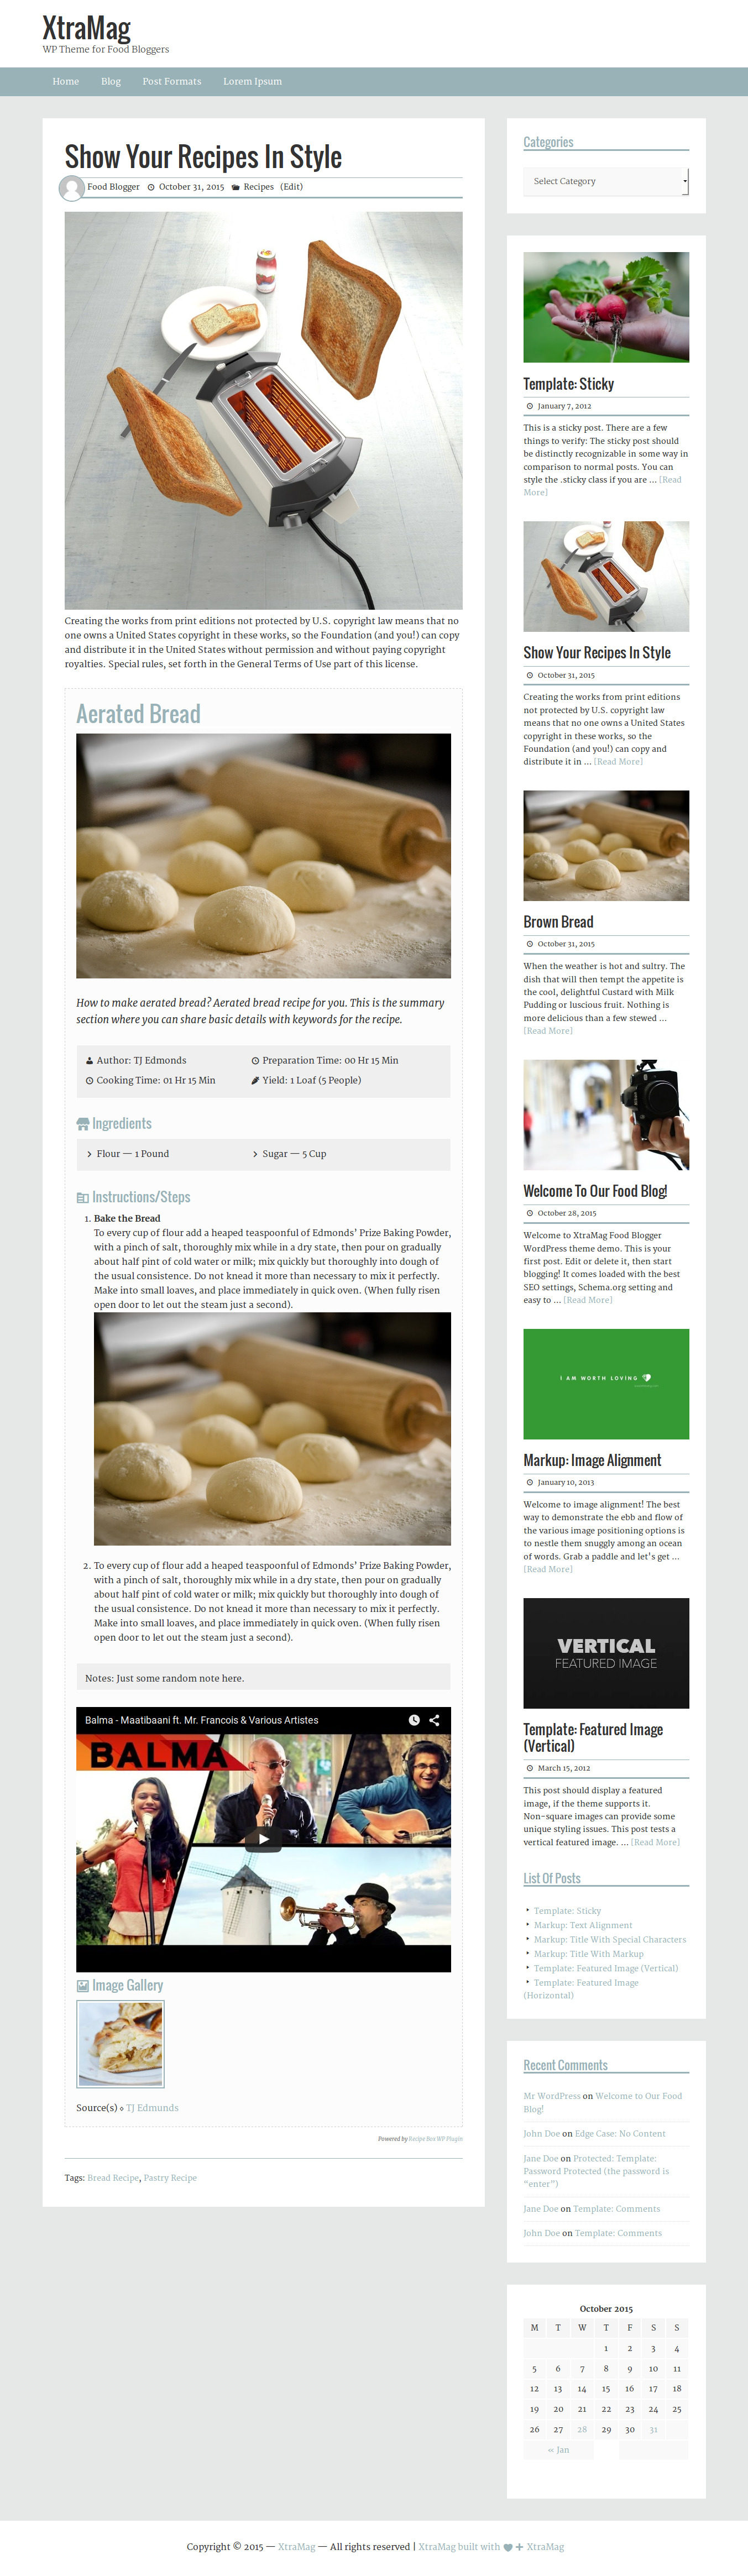 Xtramag wordpress theme food blogging guide click here demo download forumfinder Choice Image